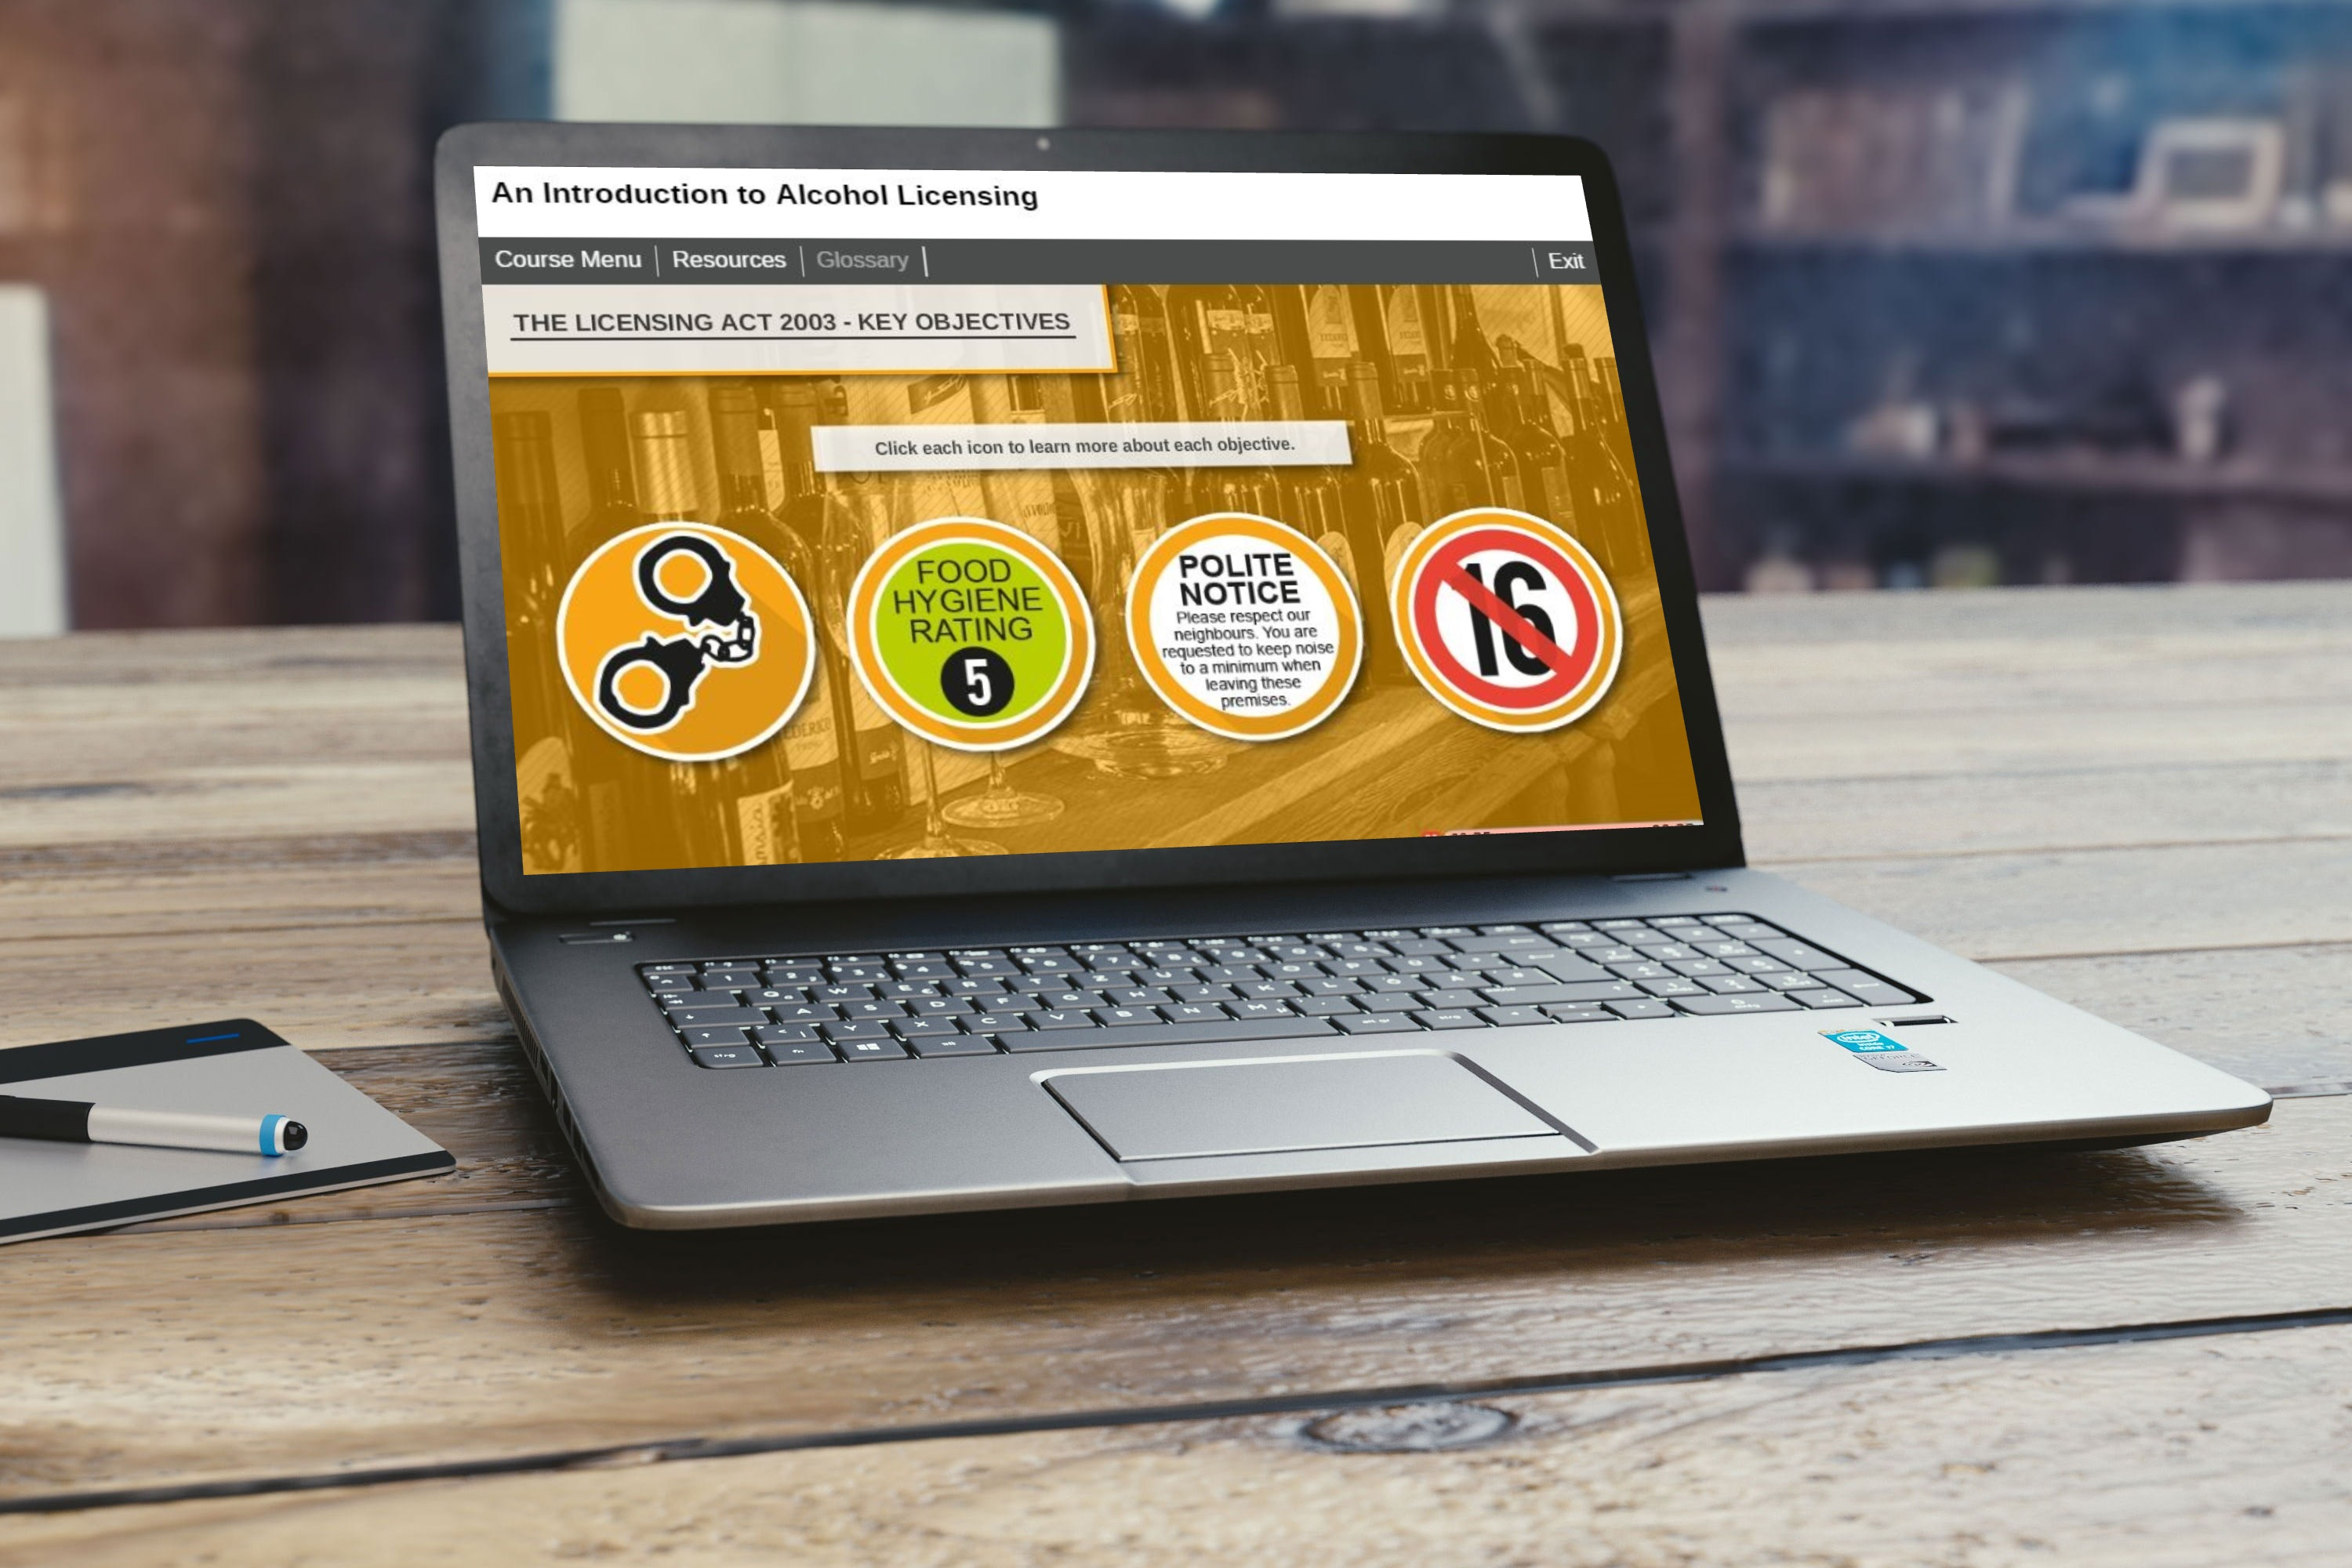 Alcohol Licensing in Laptop